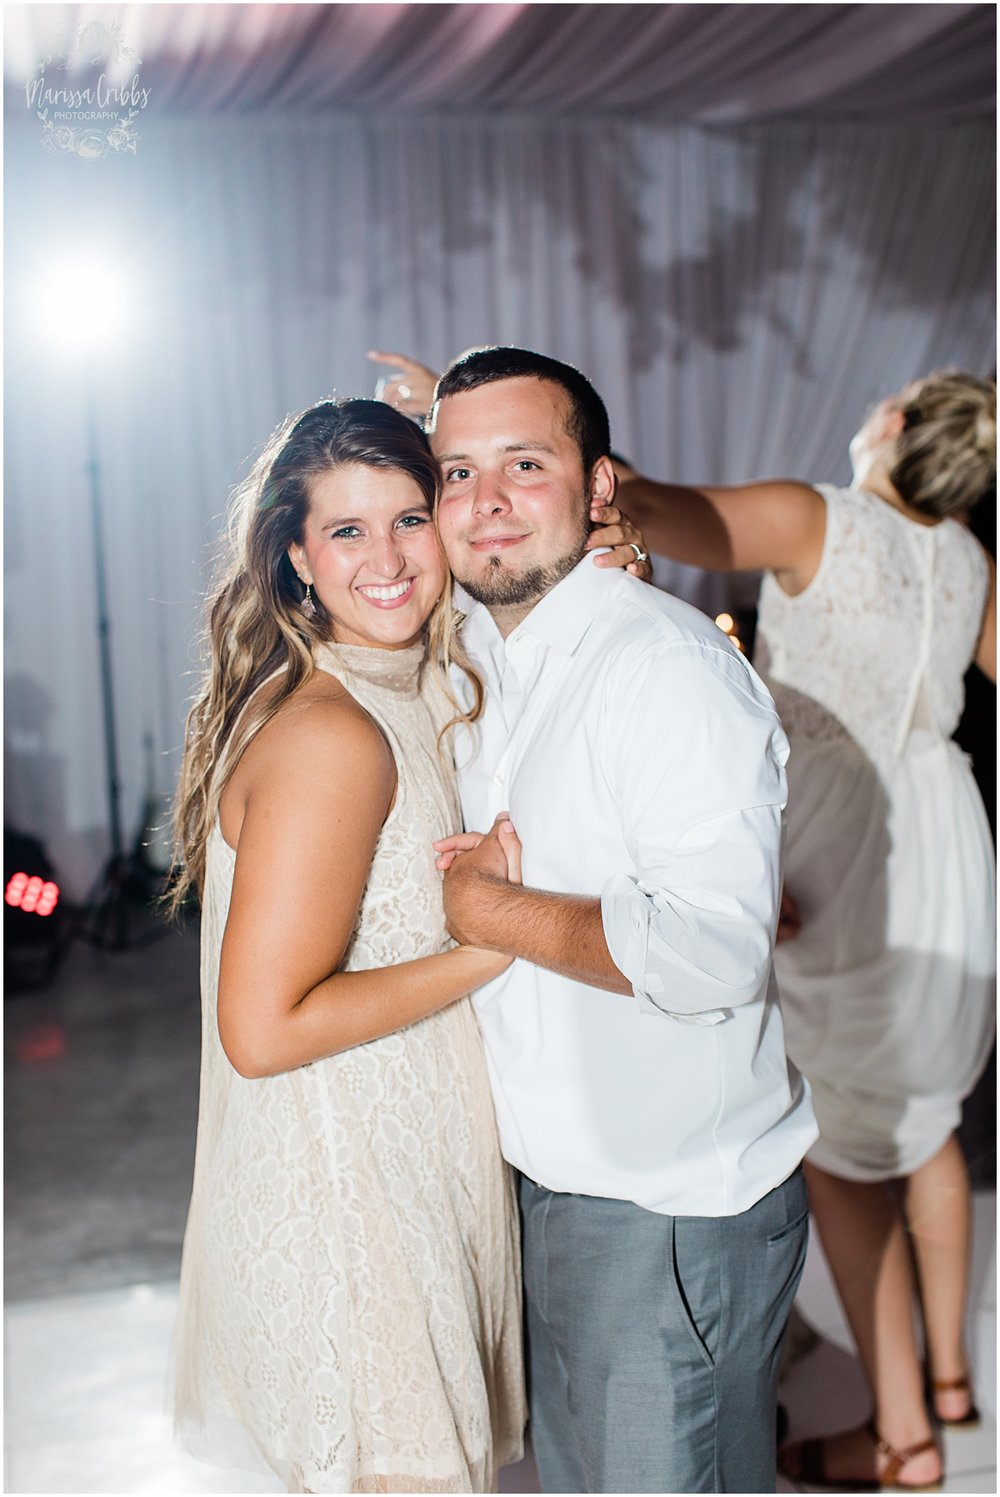 GORBY WEDDING | MARISSA CRIBBS PHOTOGRAPHY_5143.jpg